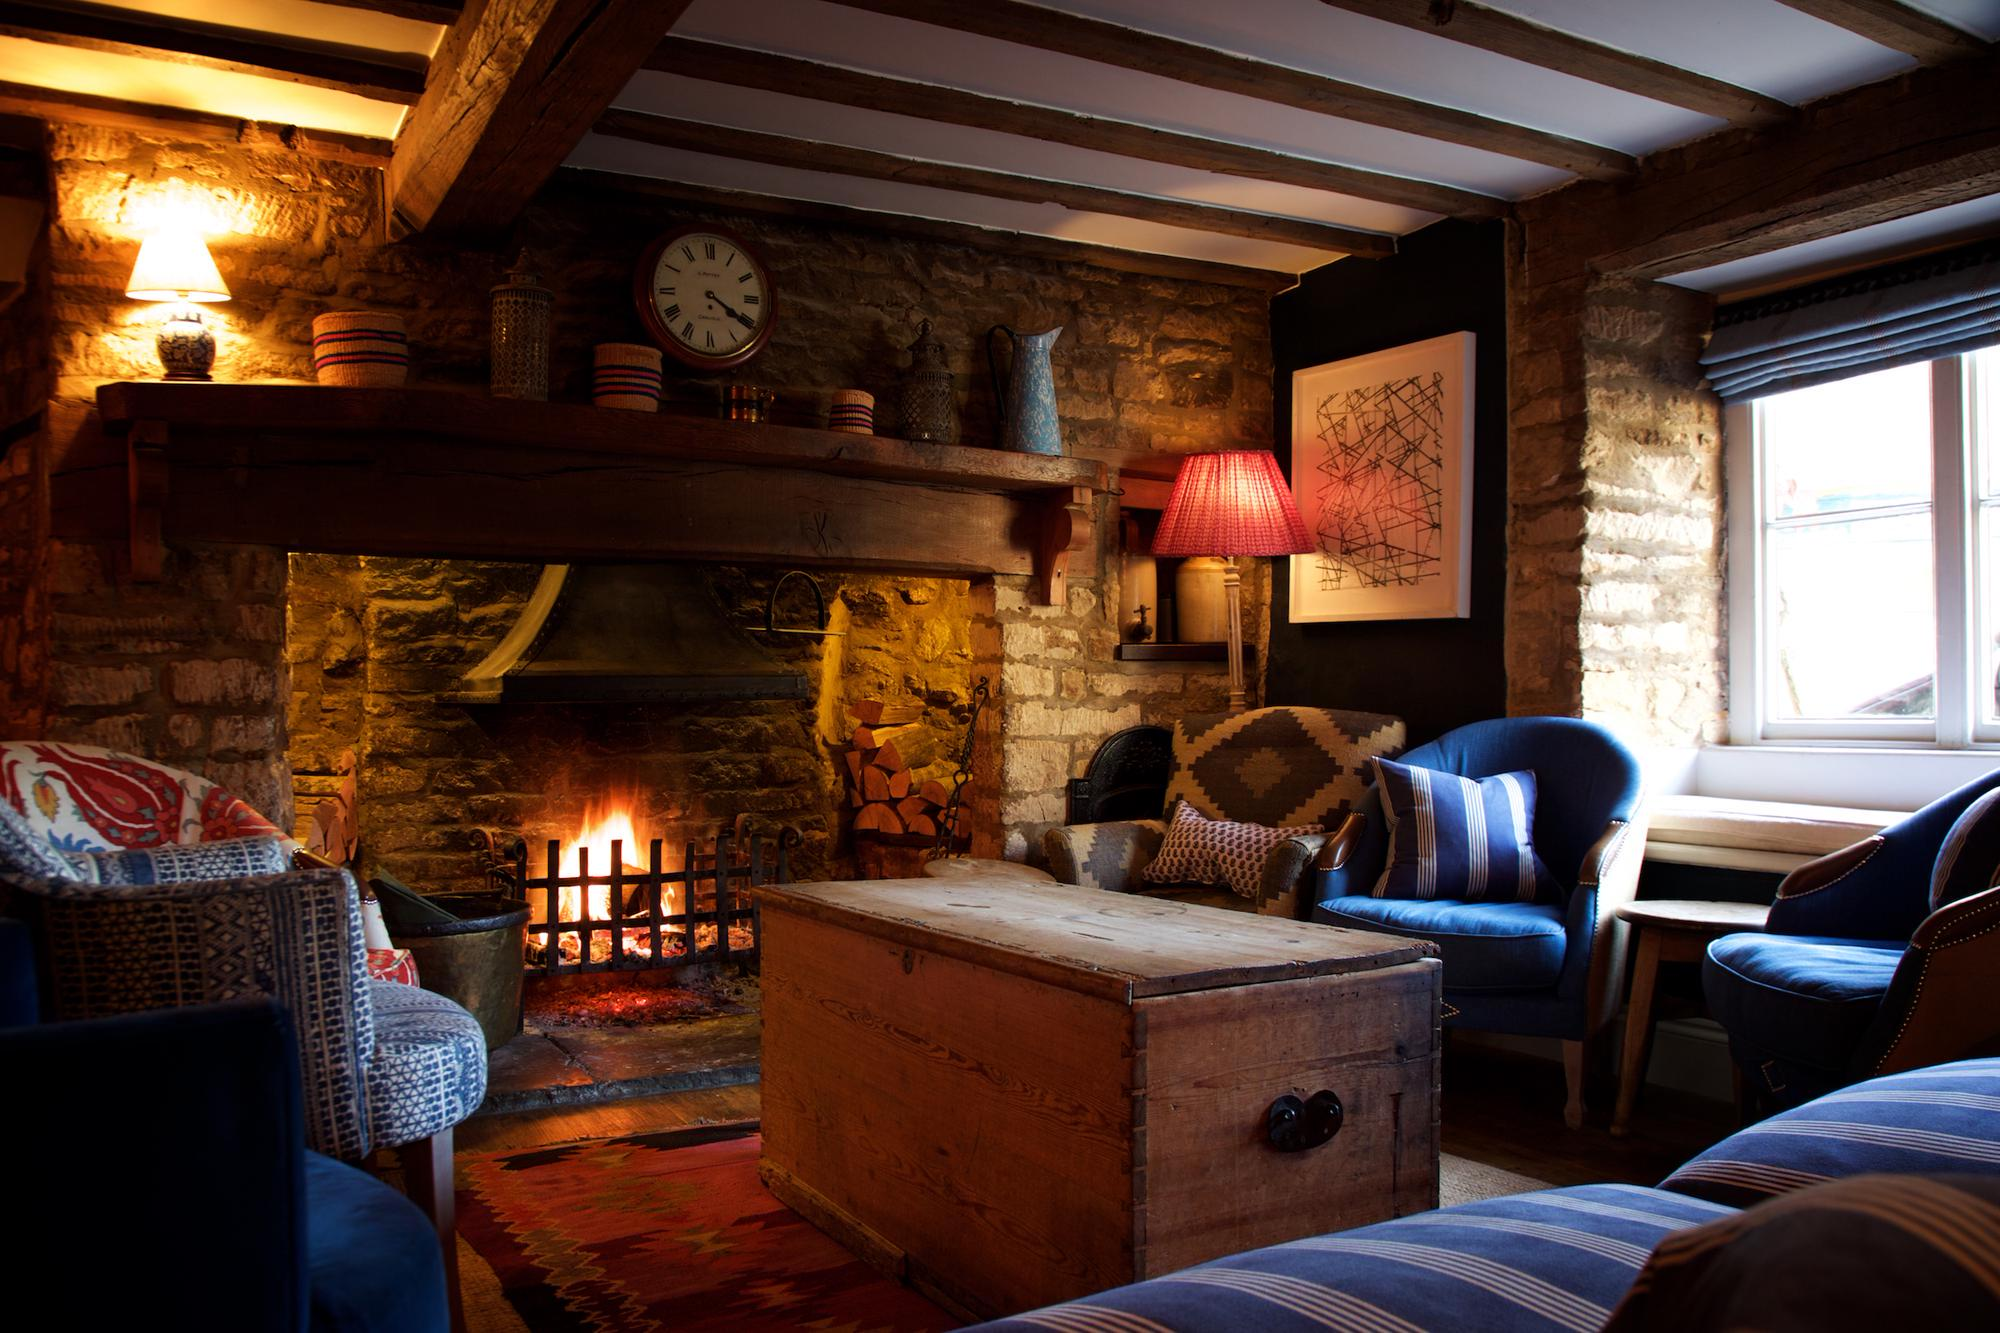 Pubs with Rooms in South East England